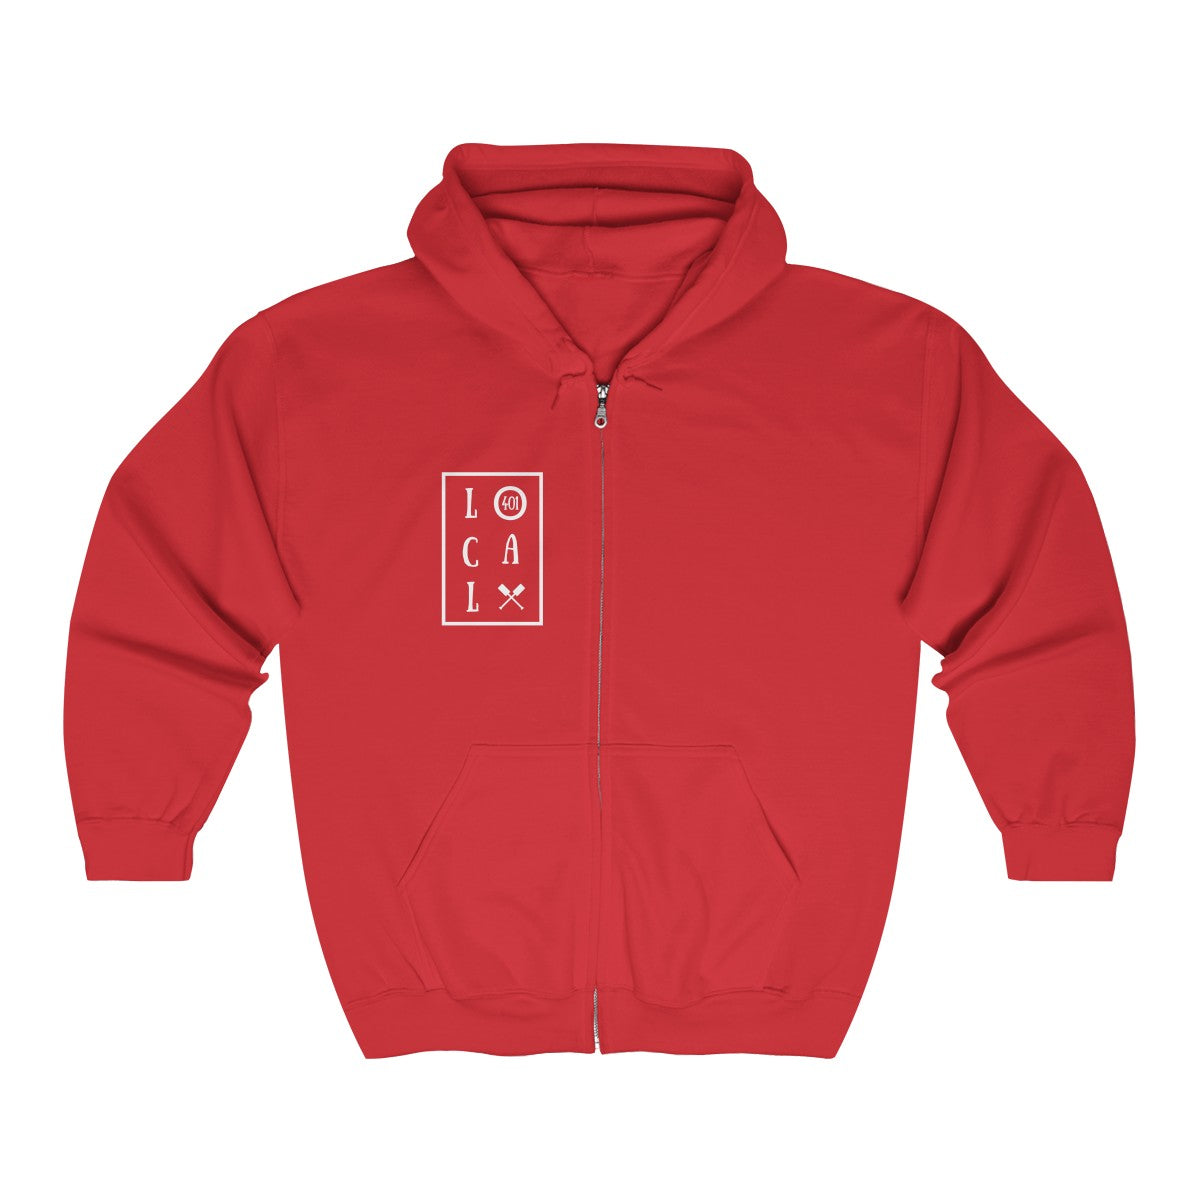 Unisex Heavy Blend™ Full Zip Hooded Sweatshirt